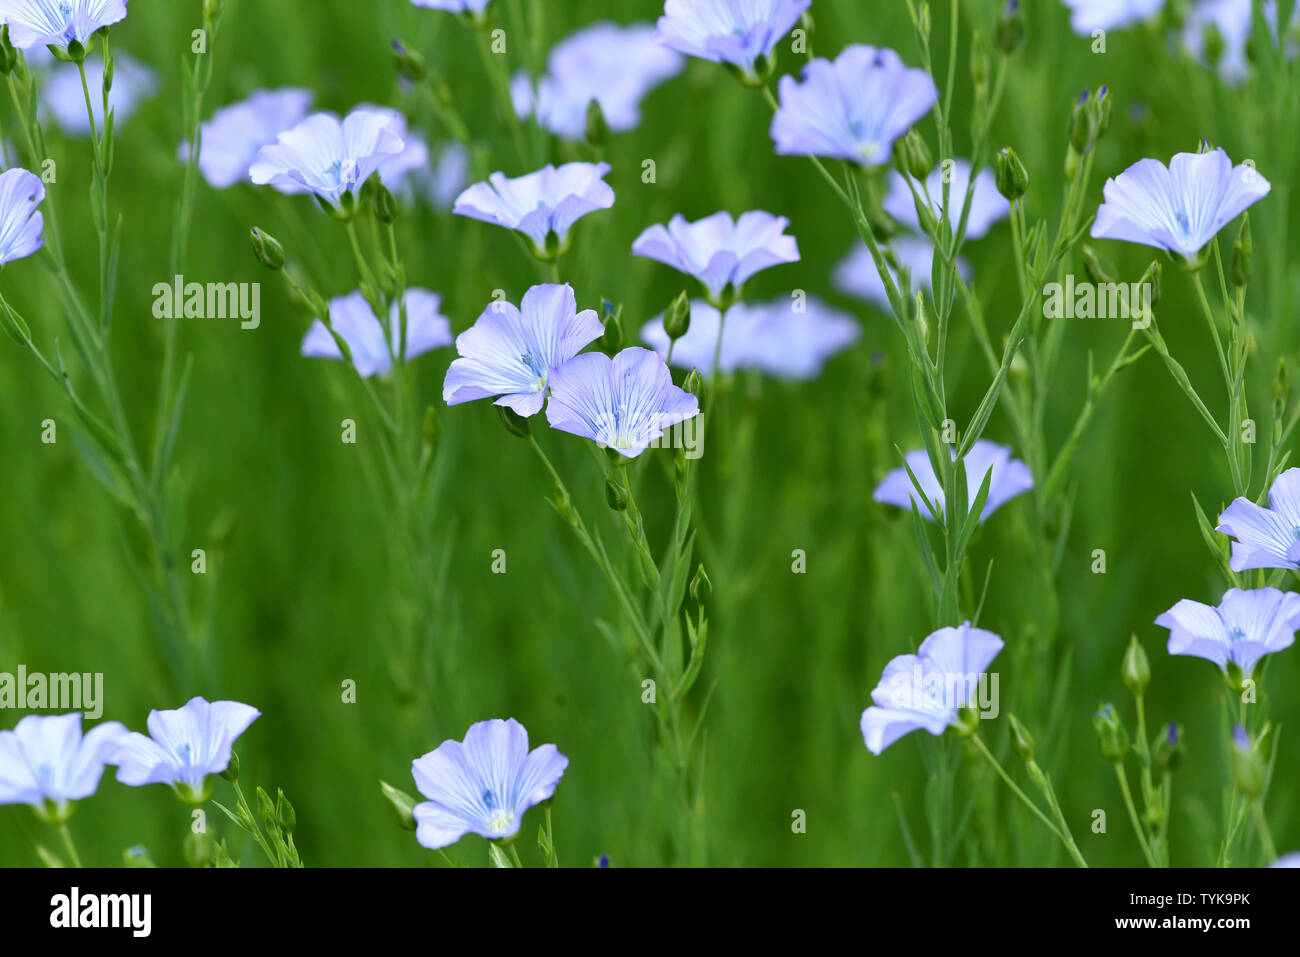 Lein, Linum, perenne - Stock Image